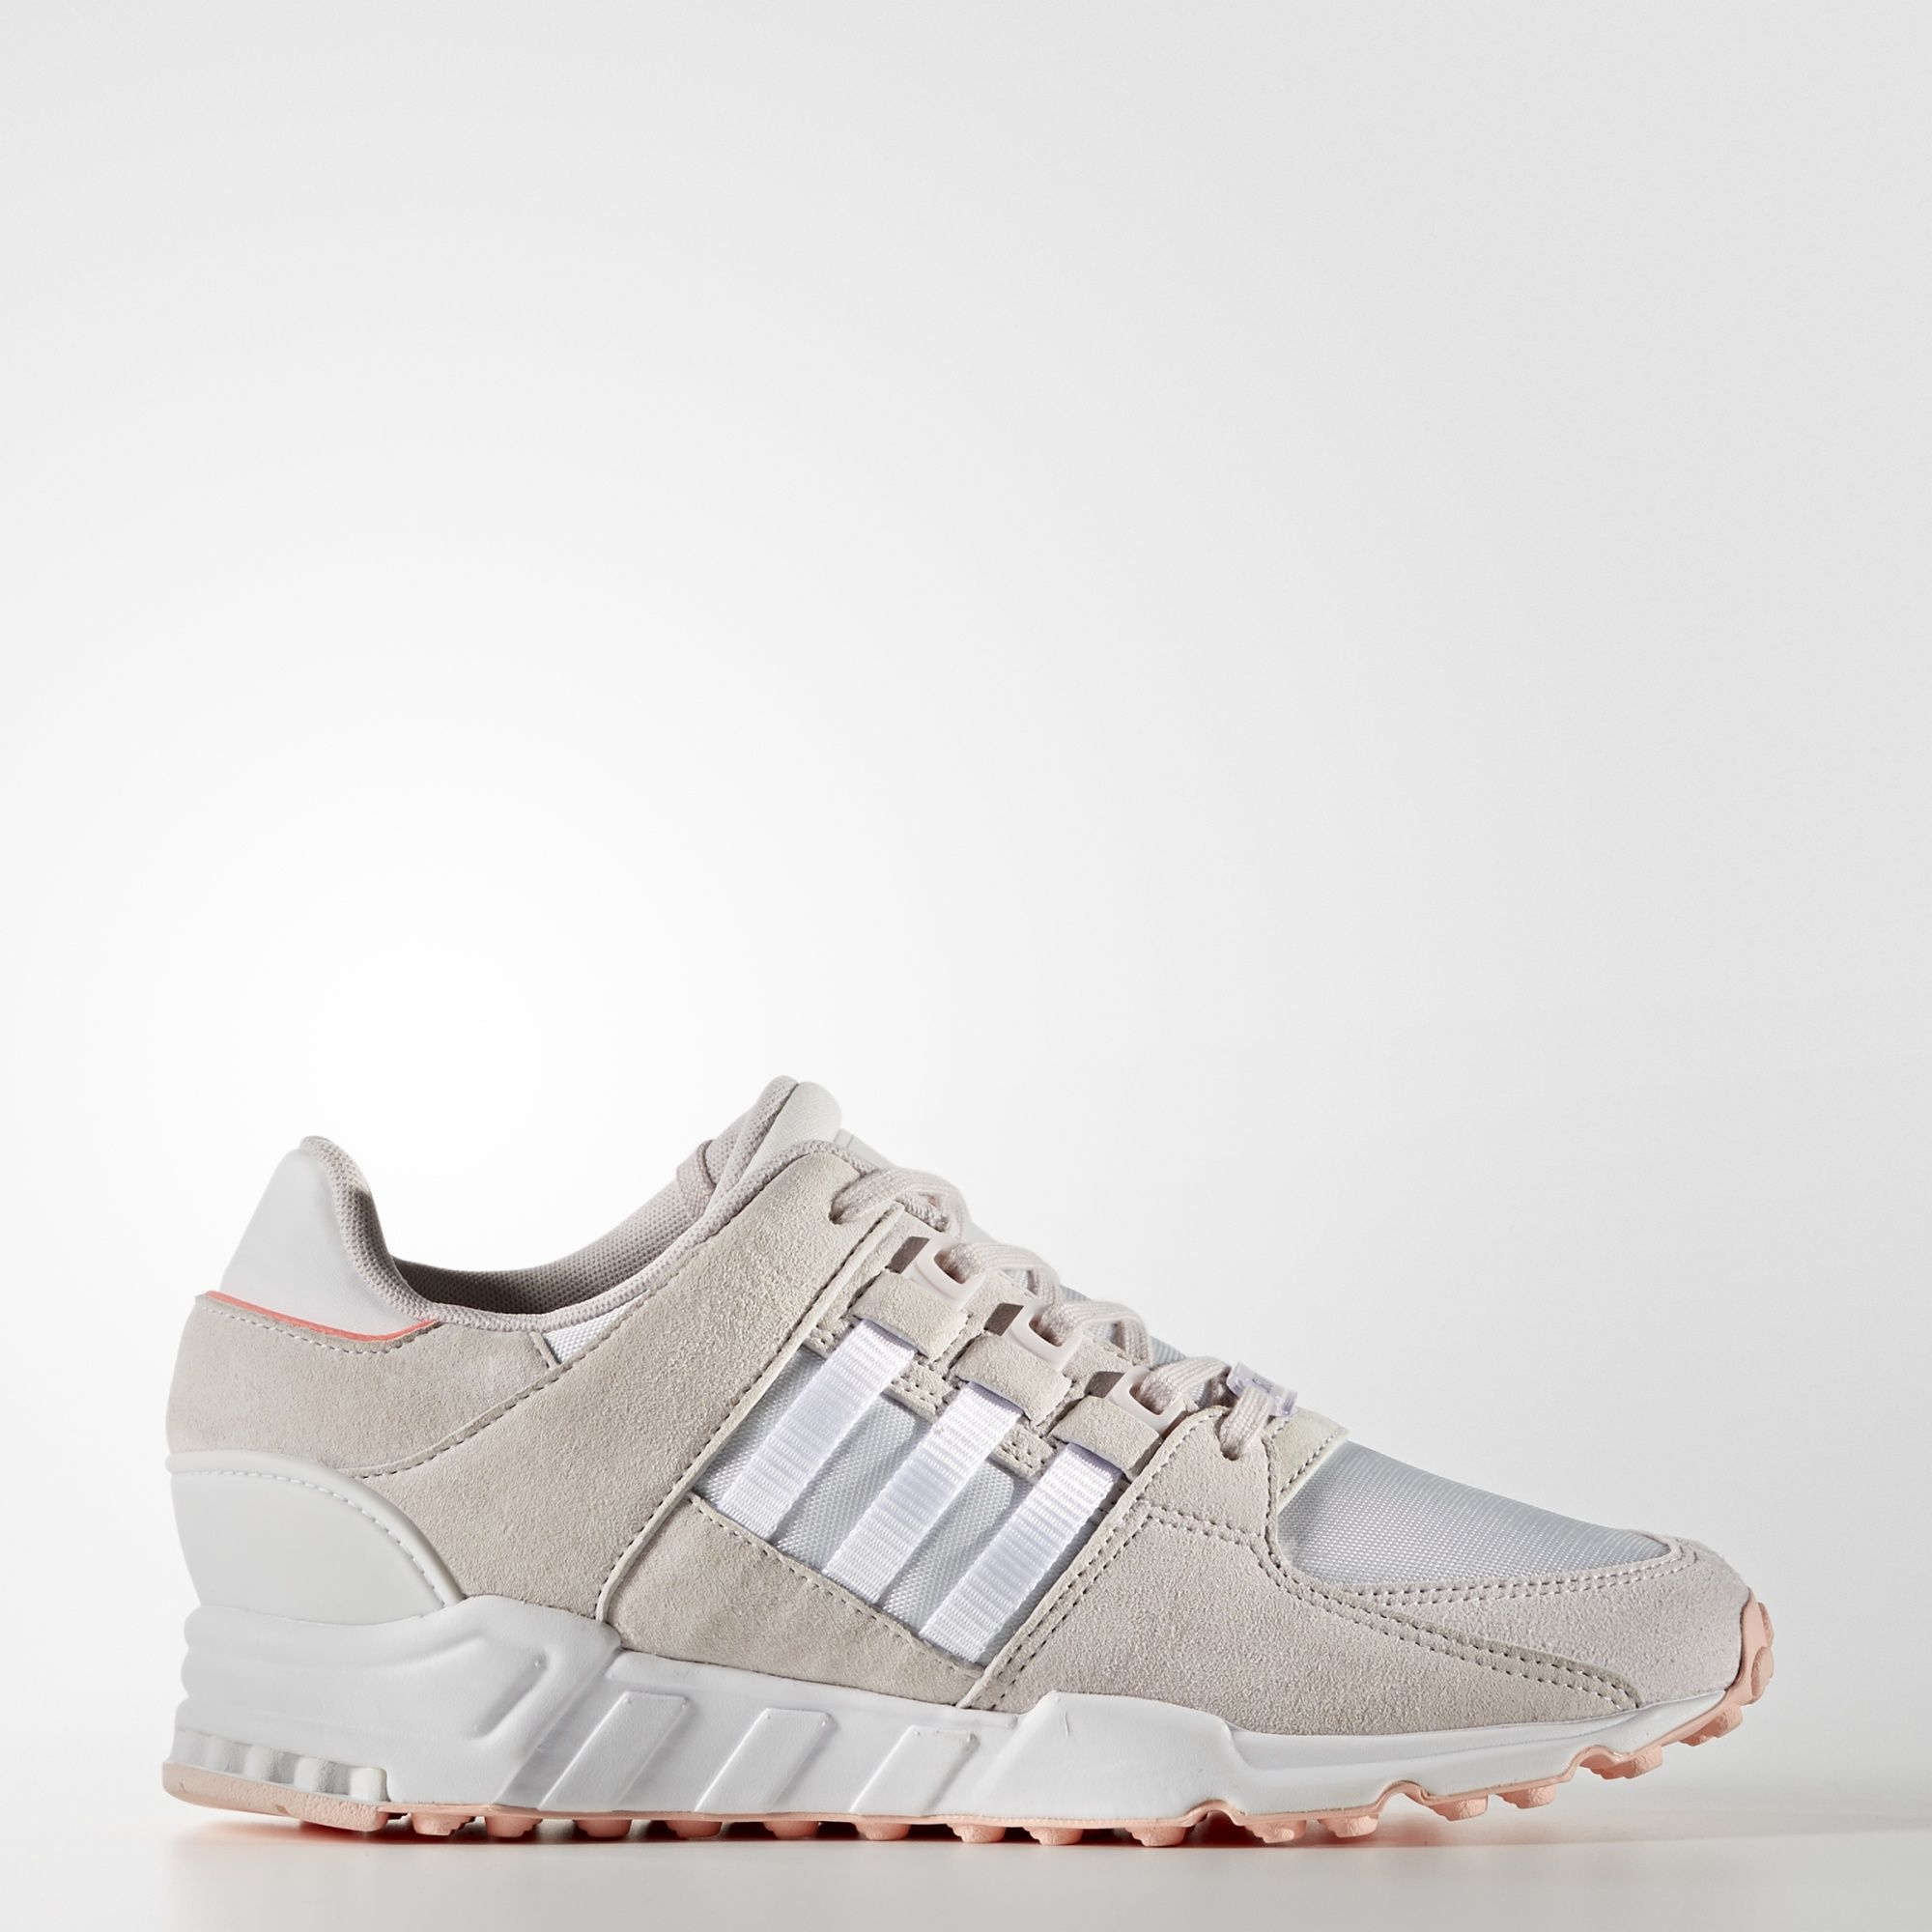 Shoes Eqt Rf Support Clothes Adidas Adidas comfy 04qPBz0Rn